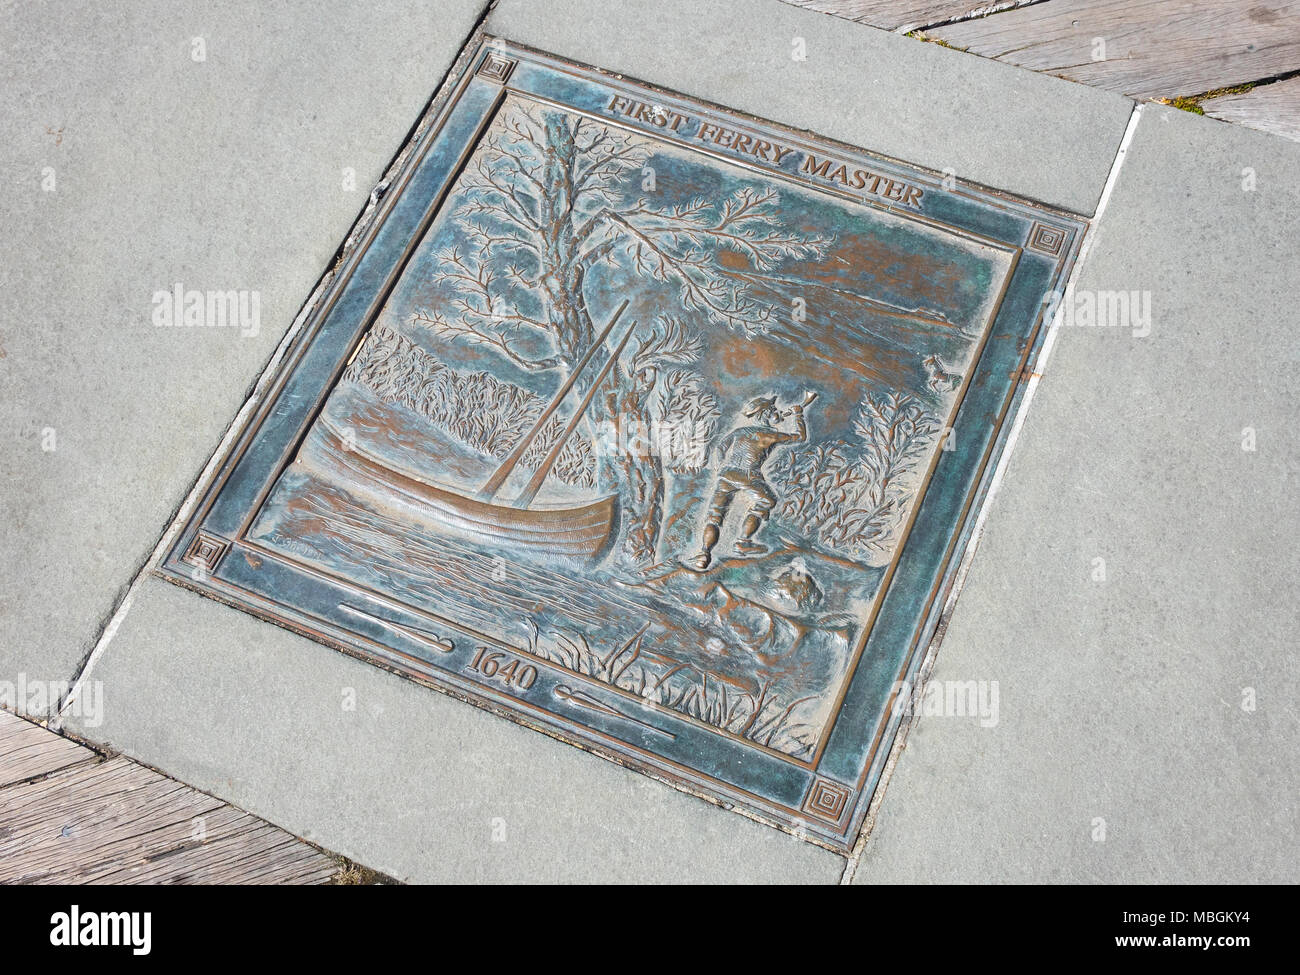 Memorial plaque set into the dock at Dumbo, Brooklyn to commemorate the first ferry master in charge of crossings on the East River in 1640 - Stock Image